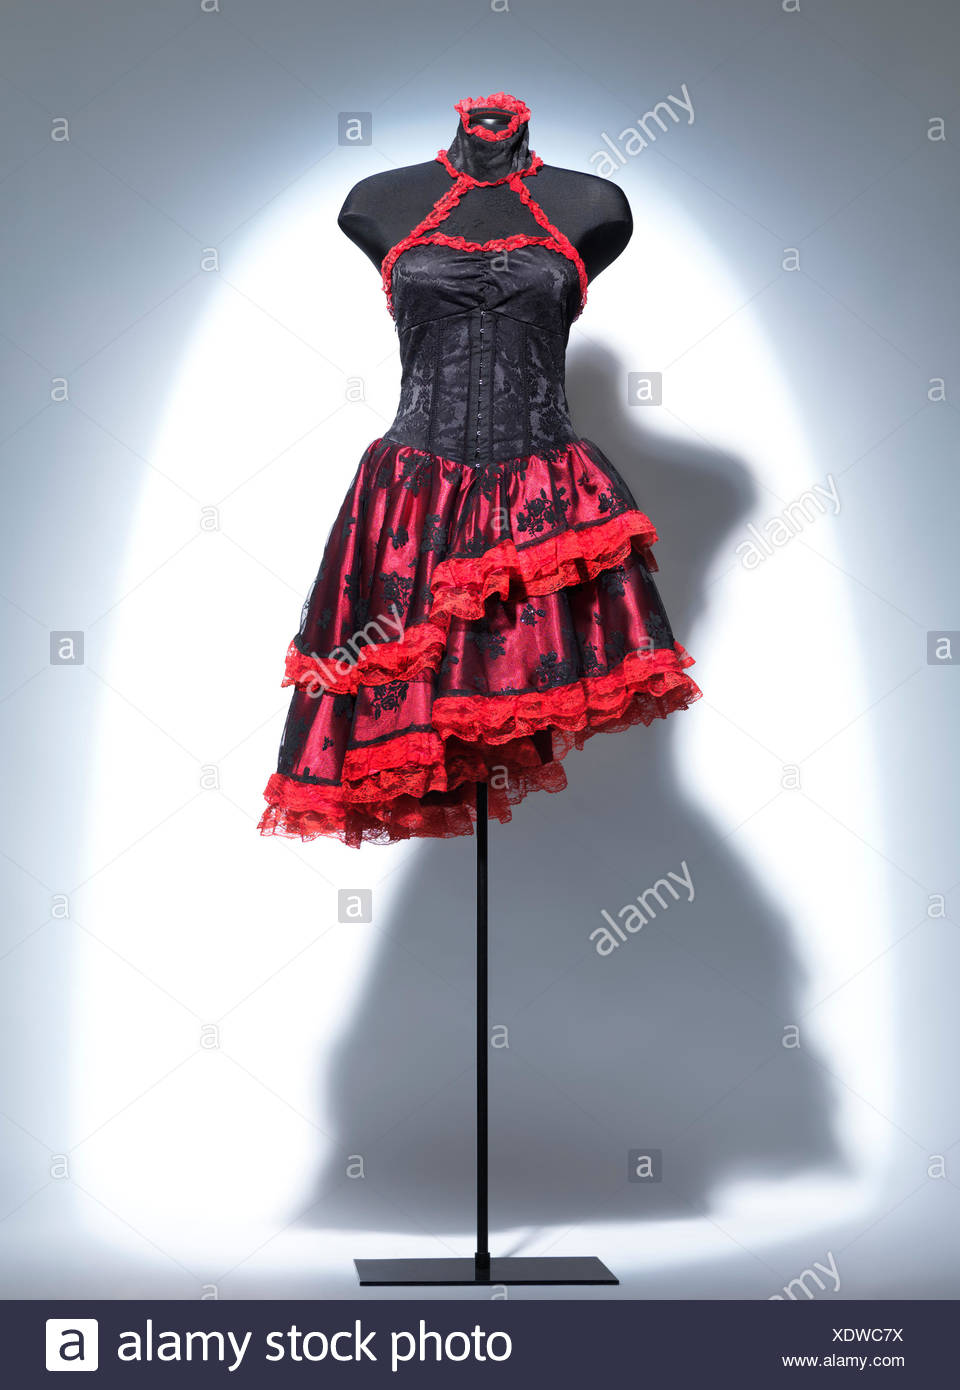 2e0dbd0a606 Vintage black and red gothic corset dress on a mannequin - Stock Image